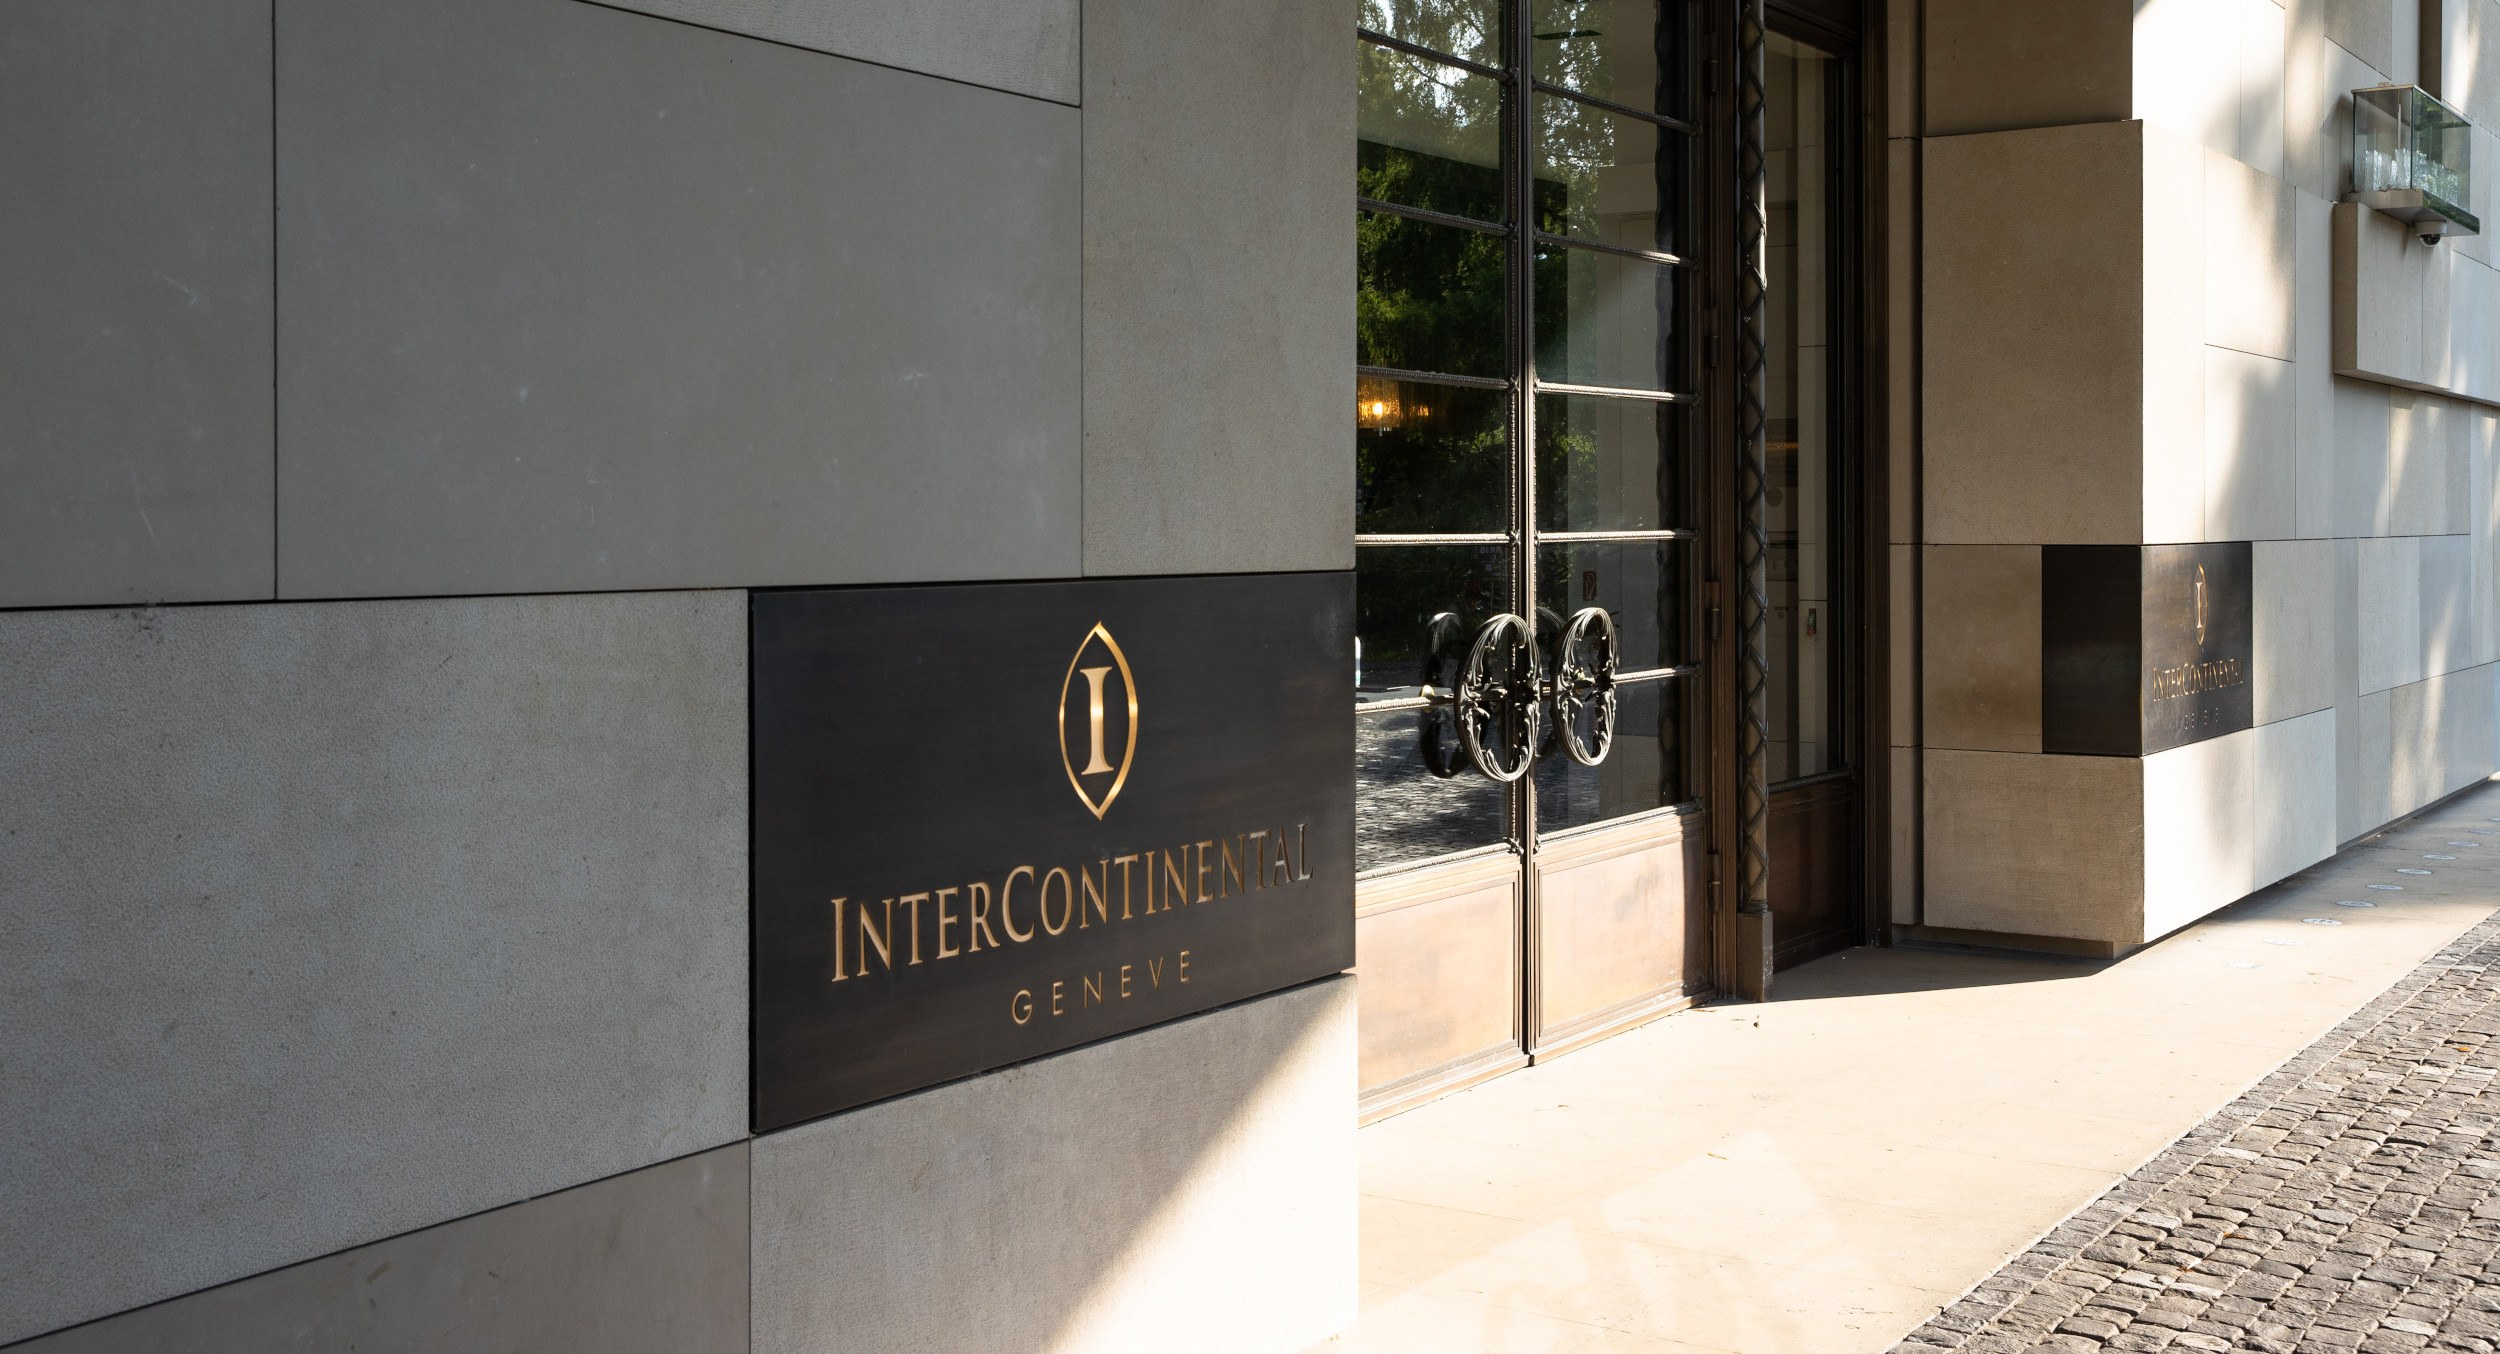 intercontinental-geneva-entrance-1